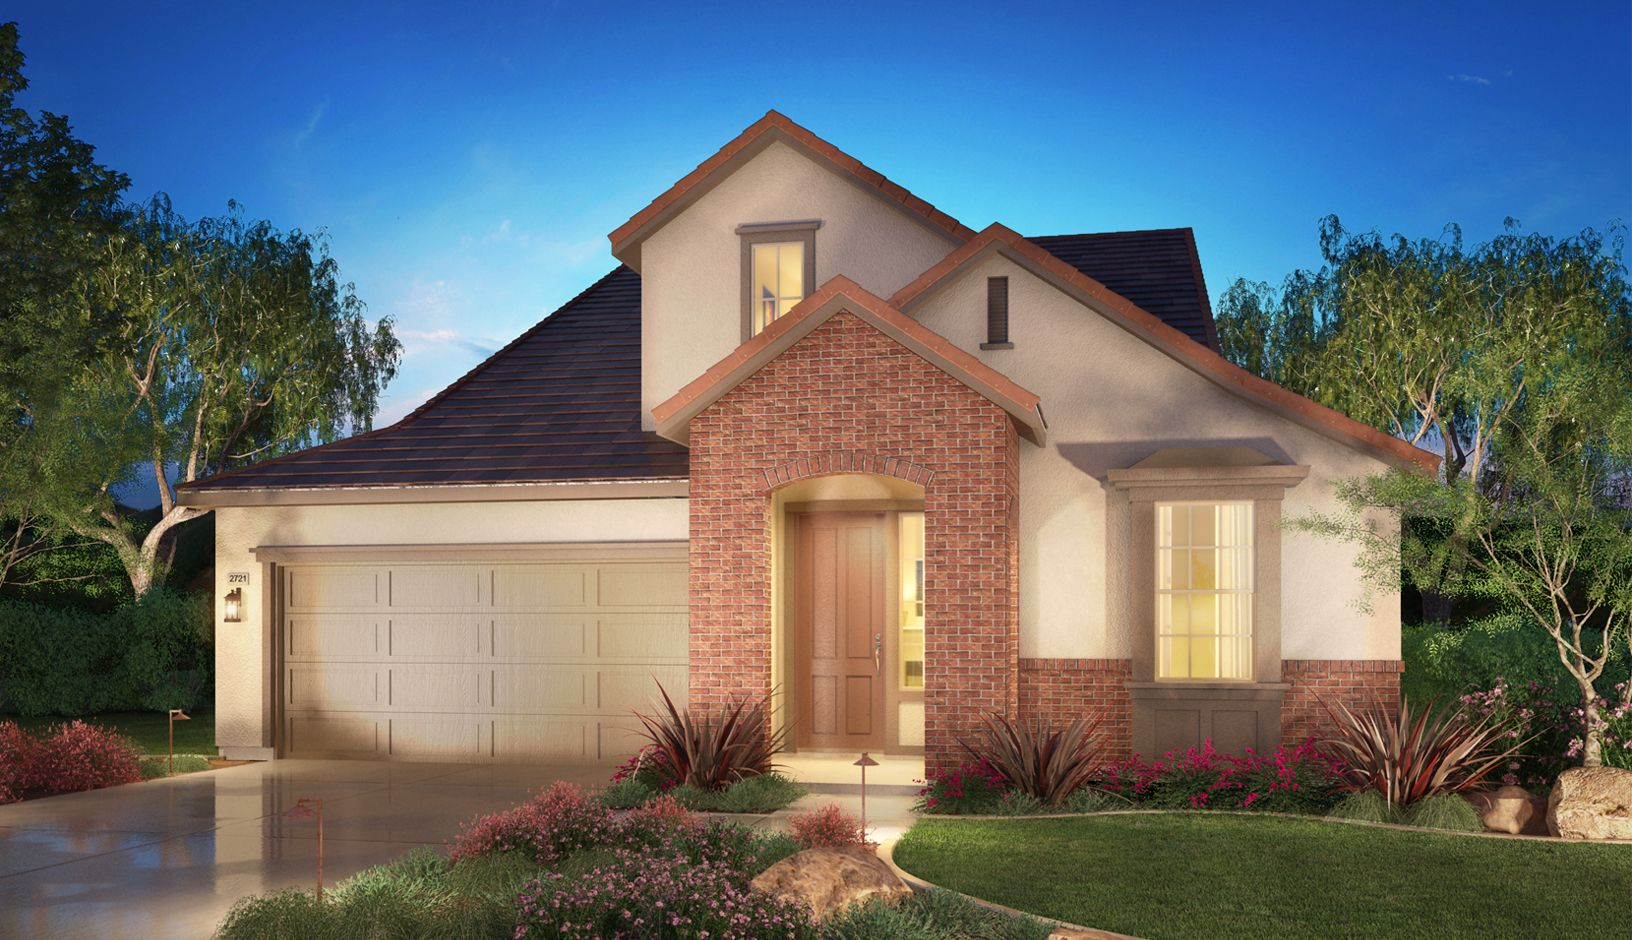 Single Family for Sale at Redstone - Residence 1x 8019 Claret Court Vacaville, California 95687 United States